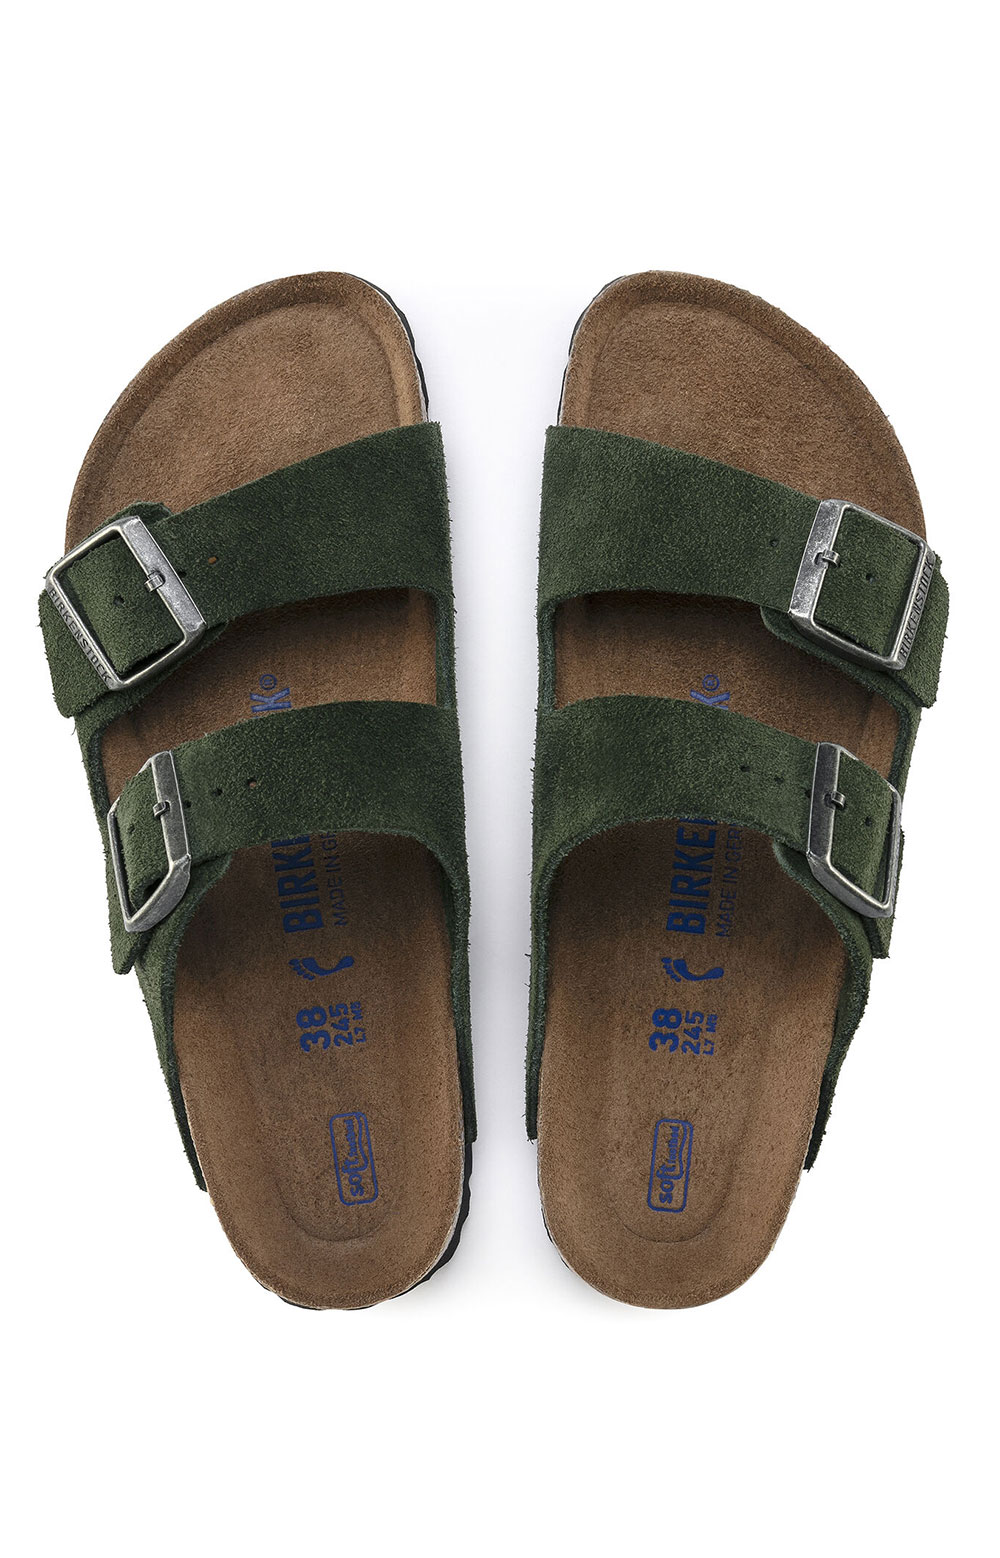 (1018143) Arizona Soft Footbed Sandals - Mountain View Green  6